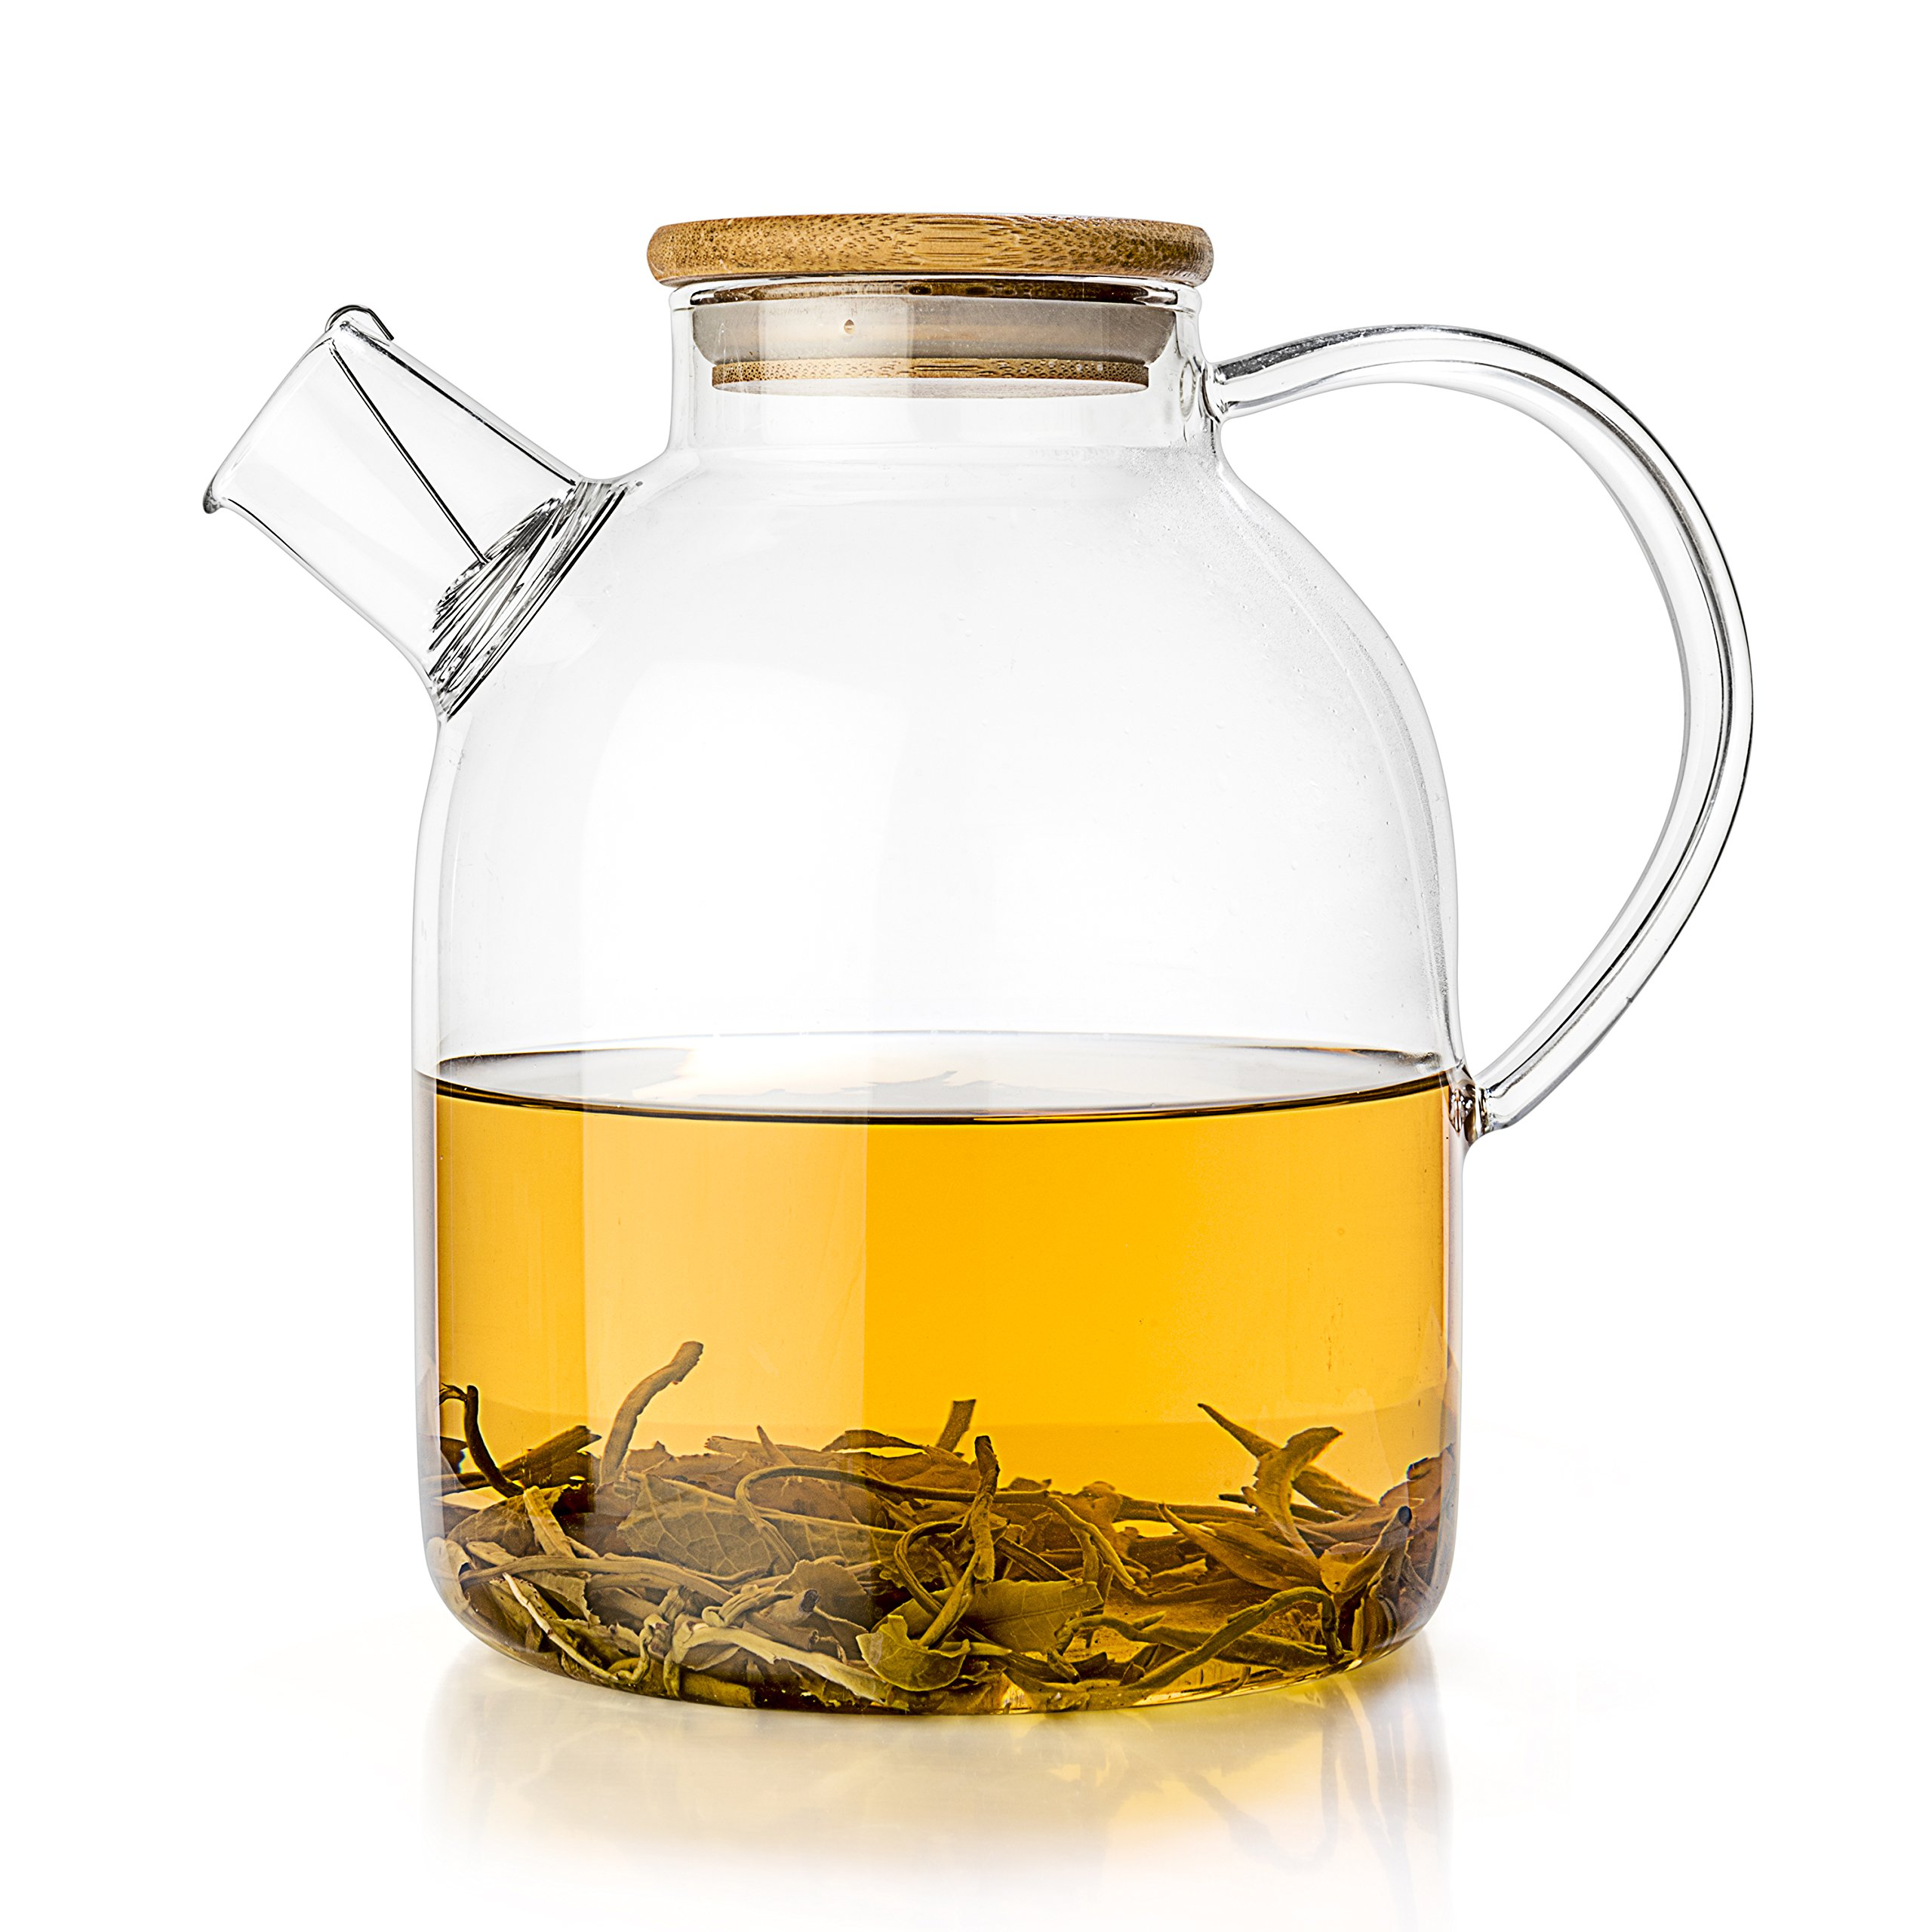 Tealyra - Glass Stove-top Kettle 60-Ounce - Teapot - Heat Resistant Borosilicate - Pitcher - Carafe - No-Dripping - for Tea Juice Water - Hot or Iced - 1800ml by Tealyra